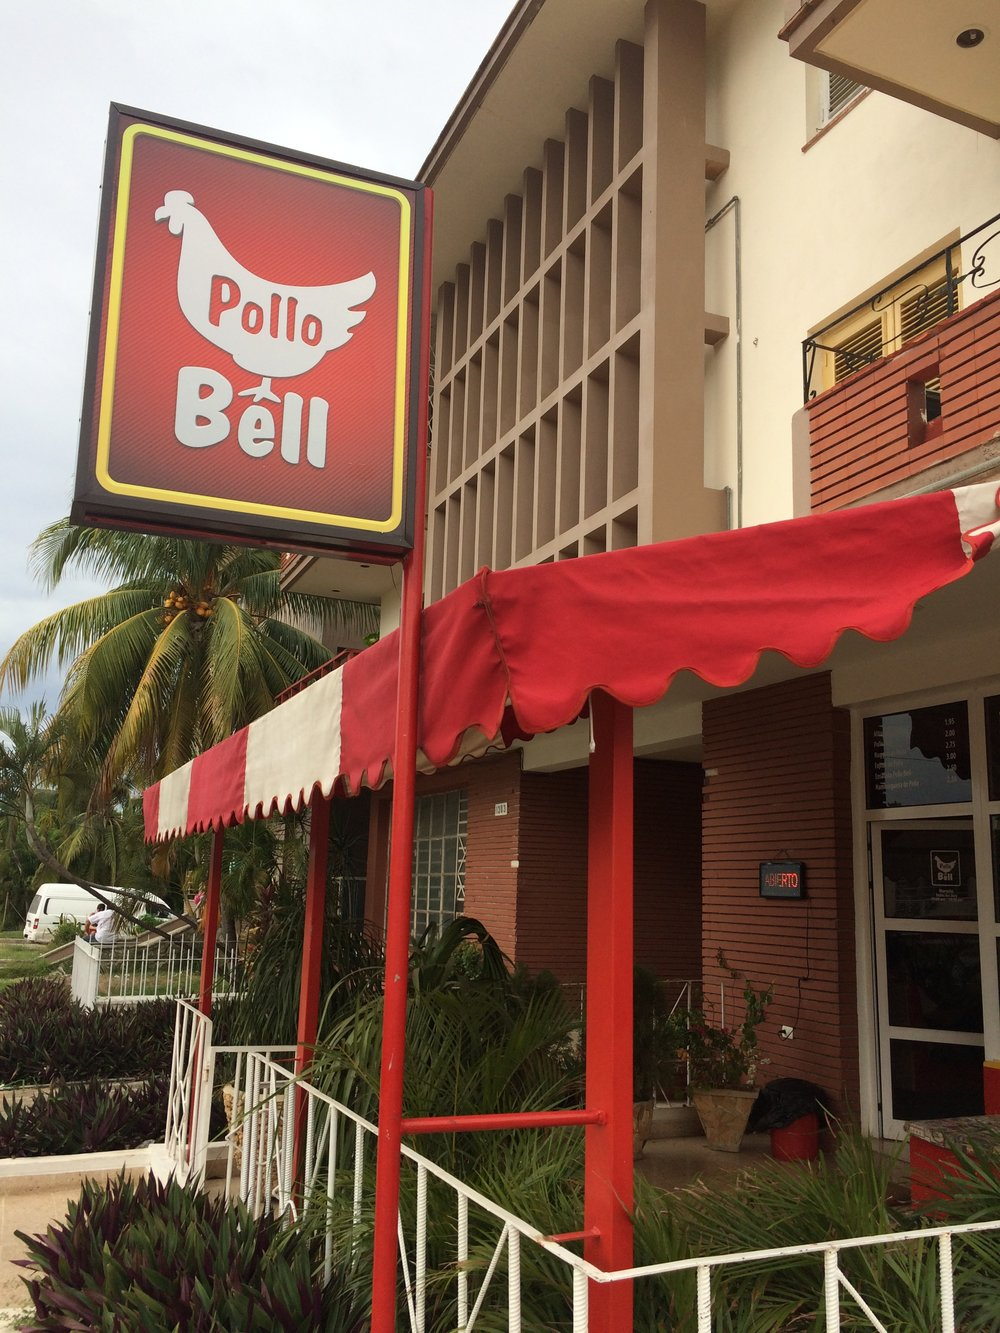 Pollo Bell,one of the rare quasi-food food restaurants in Havana,and the scene of an encounter with Americans.